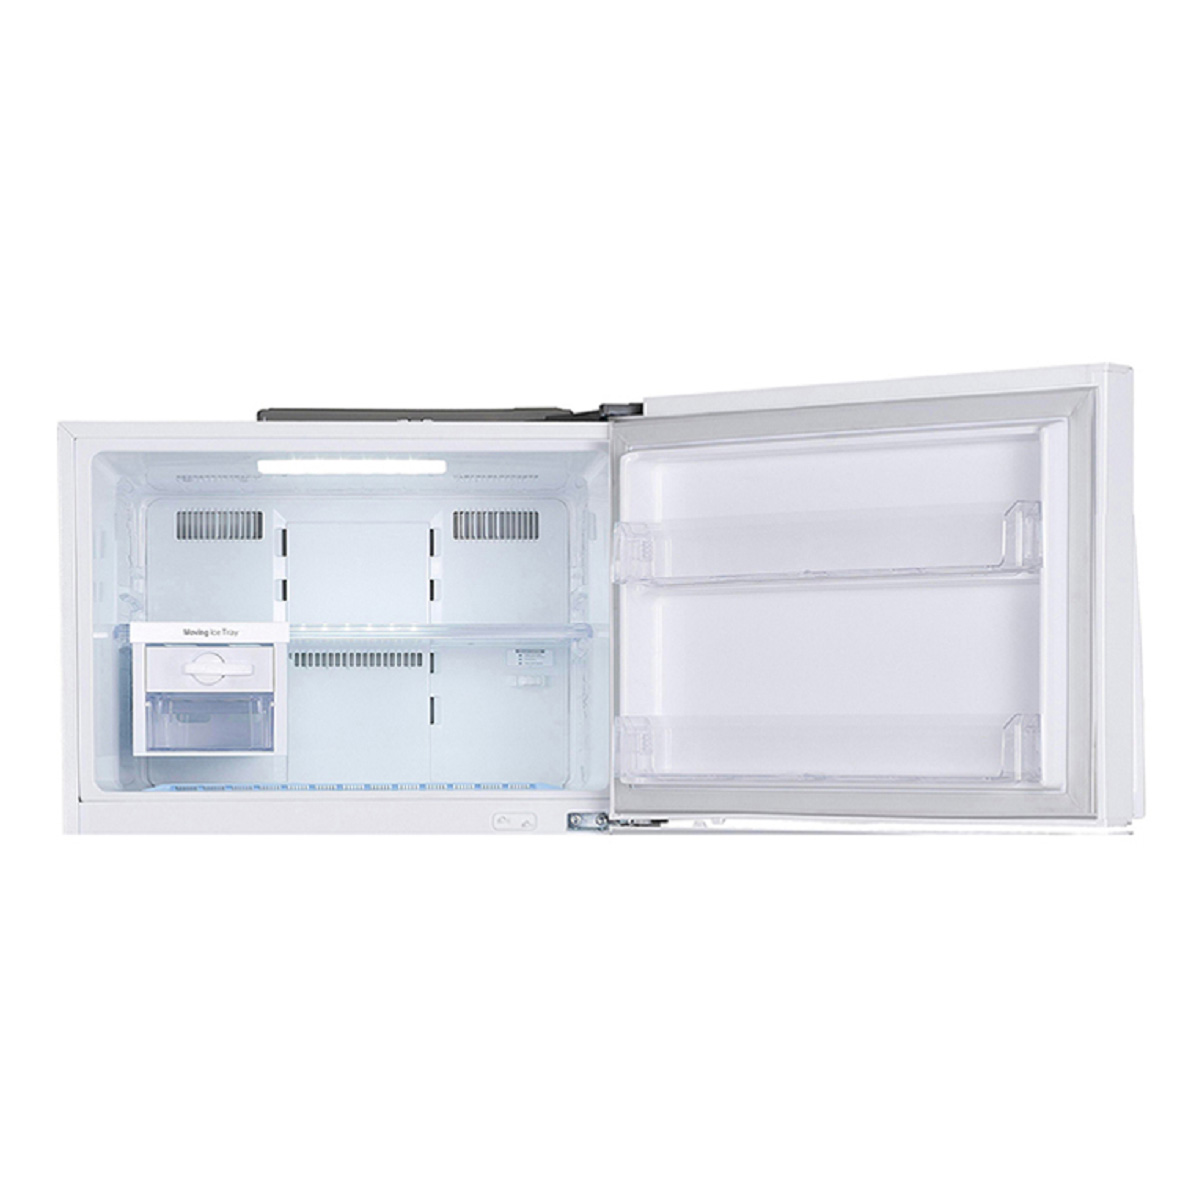 LG GT-442BWL 442litres Top Mount Fridge 35867